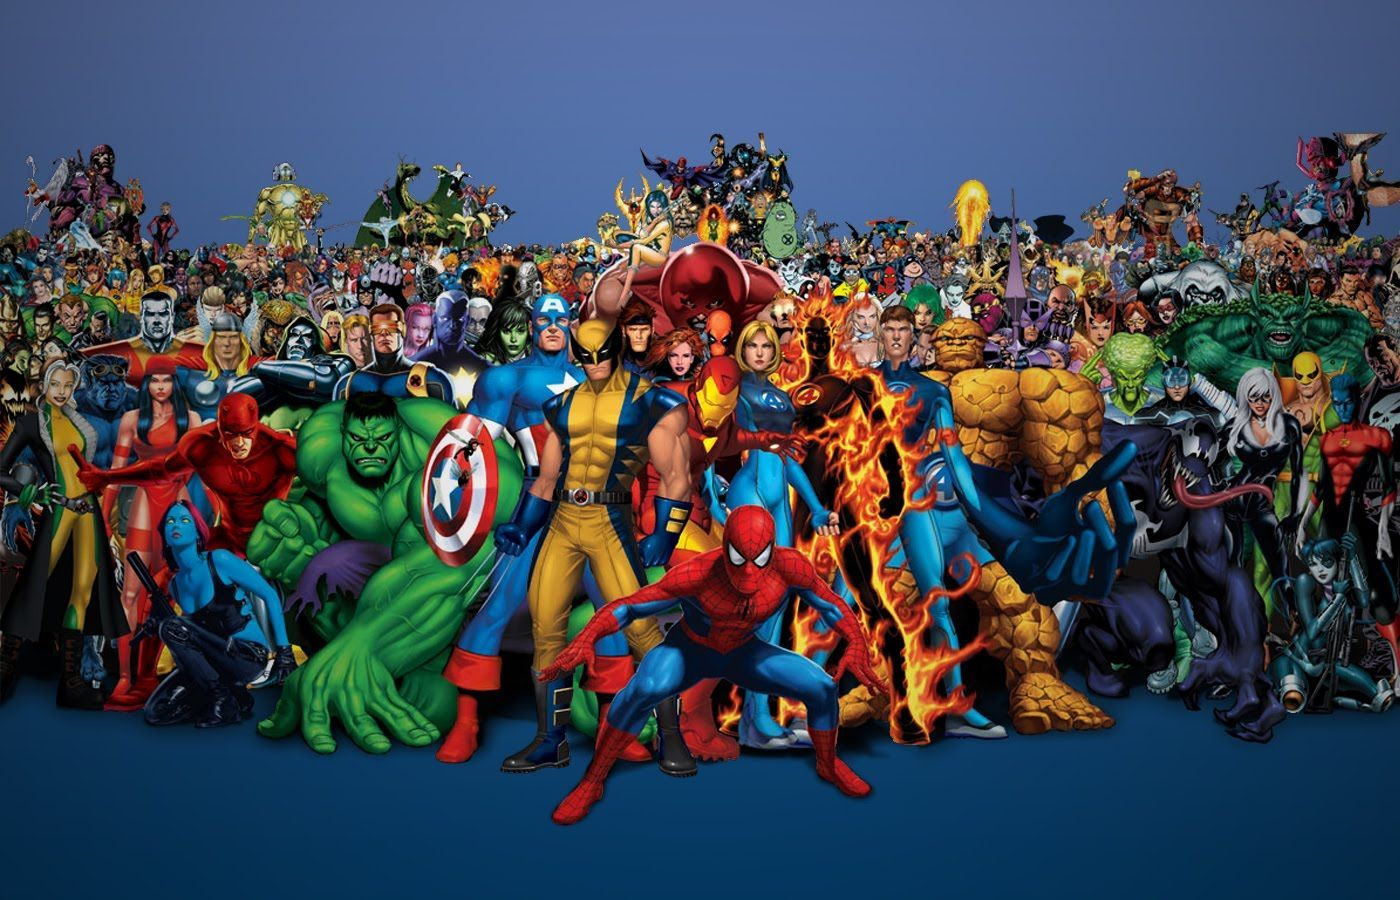 marvel heroes players demanding refunds for in-game purchases after